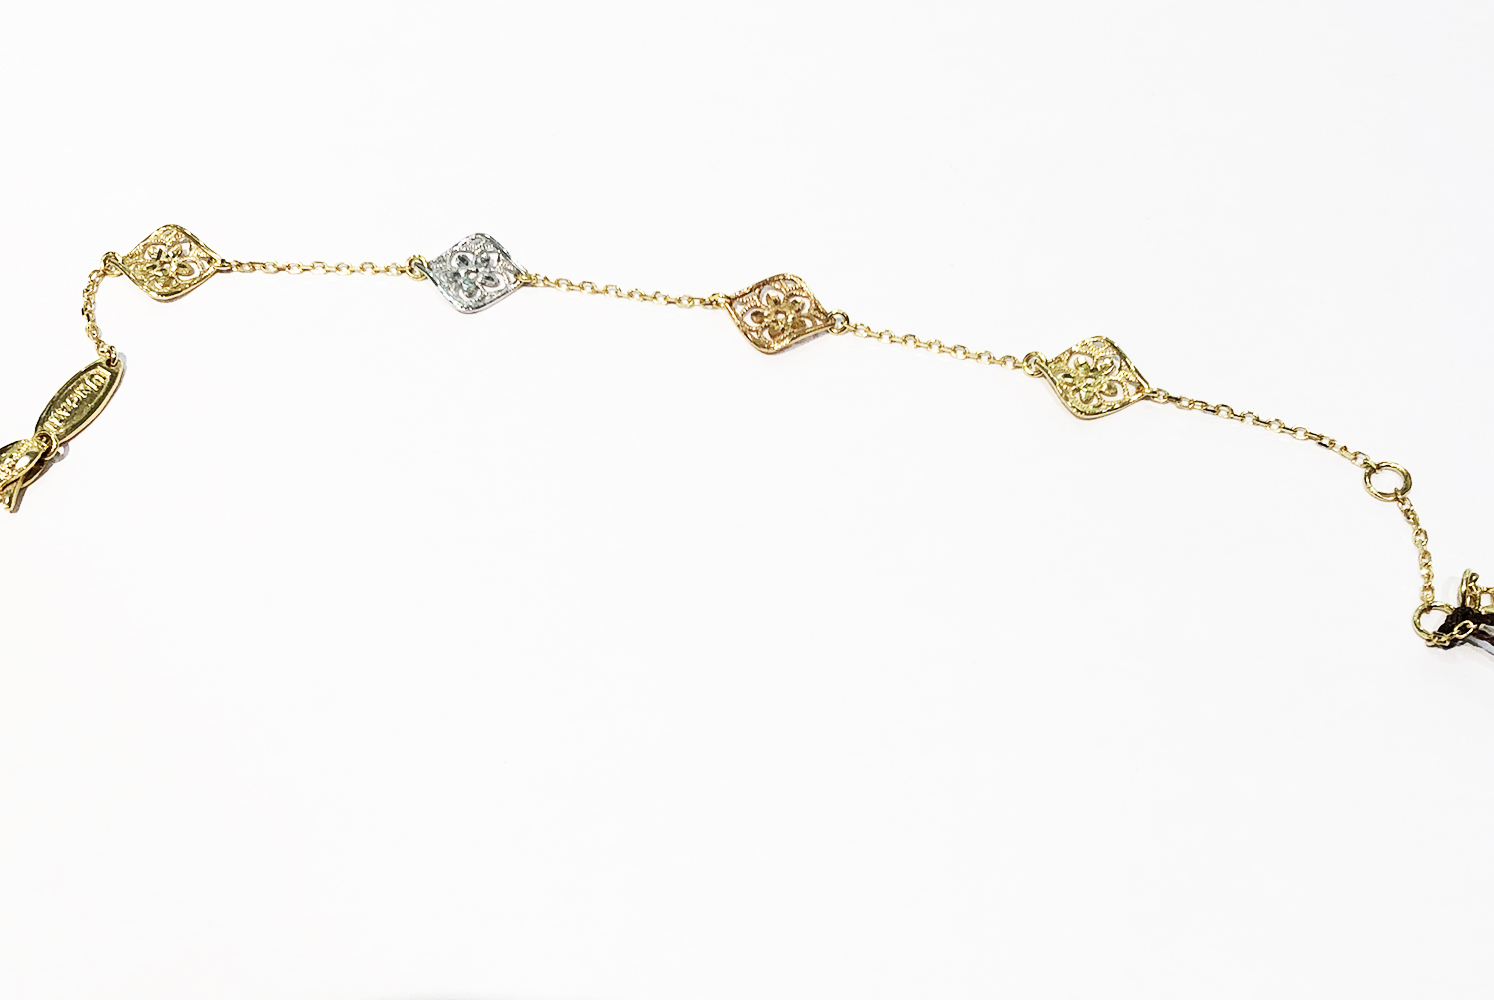 Lorenzo Ungari BRACELET YELLOW GOLD WITH SWAPS, PINK AND WHITE BR FF 0044